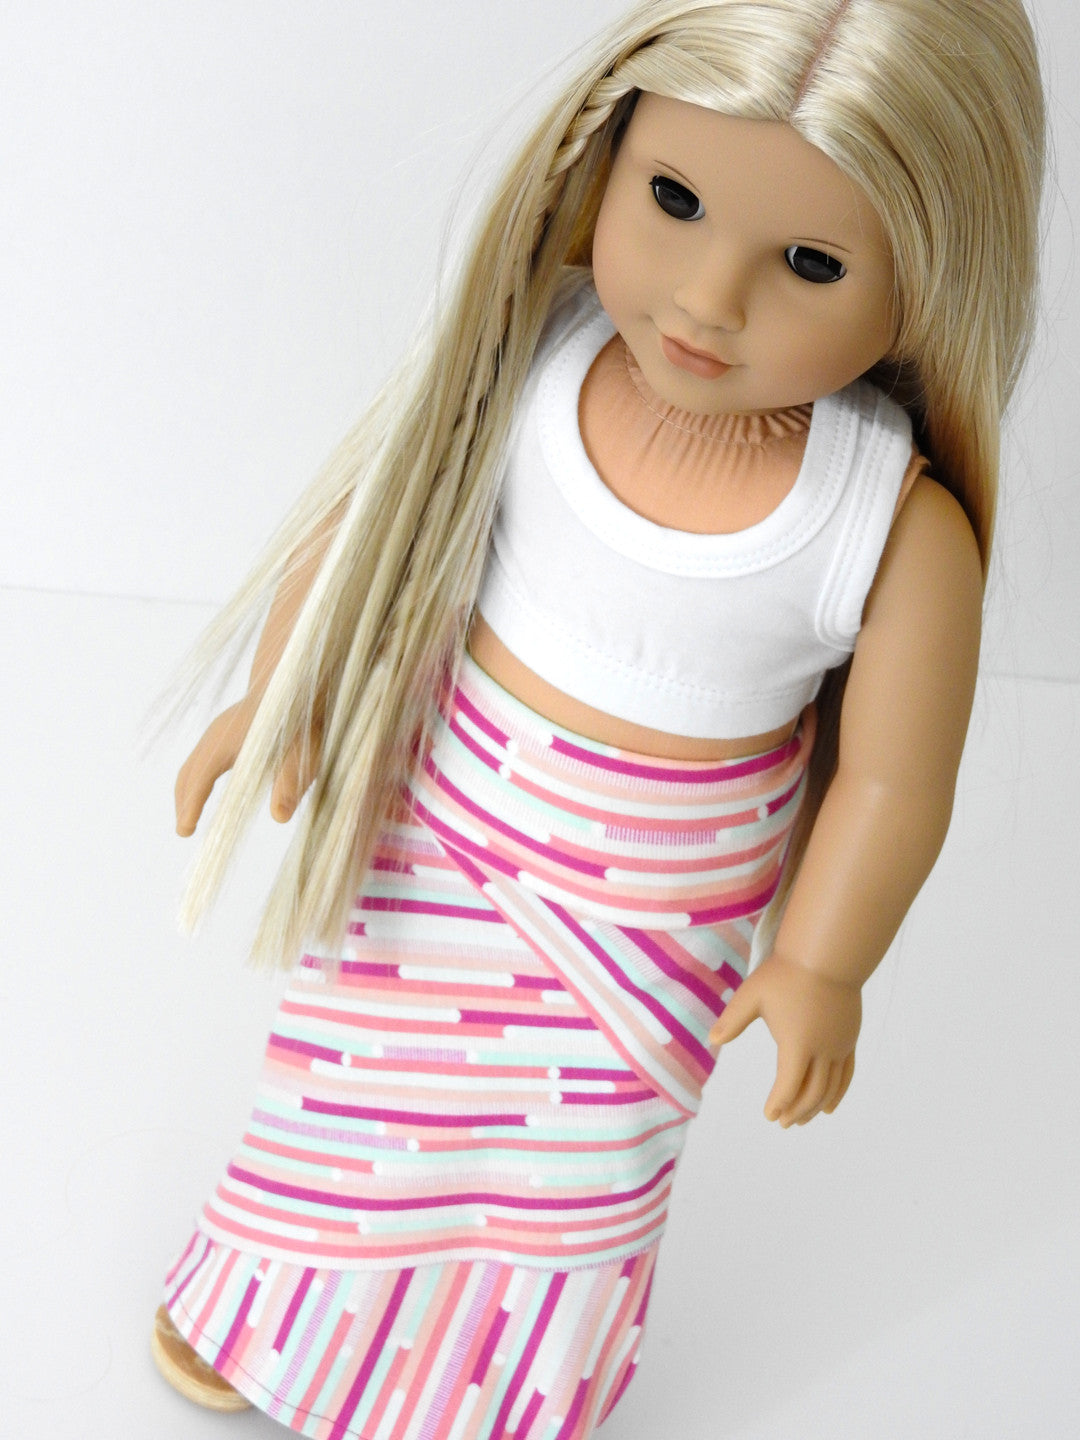 18 Inch Doll Trendy Crazy Mixed Up Stripes Maxi Skirt and Cropped Tank Top Handmade for American Girl Doll